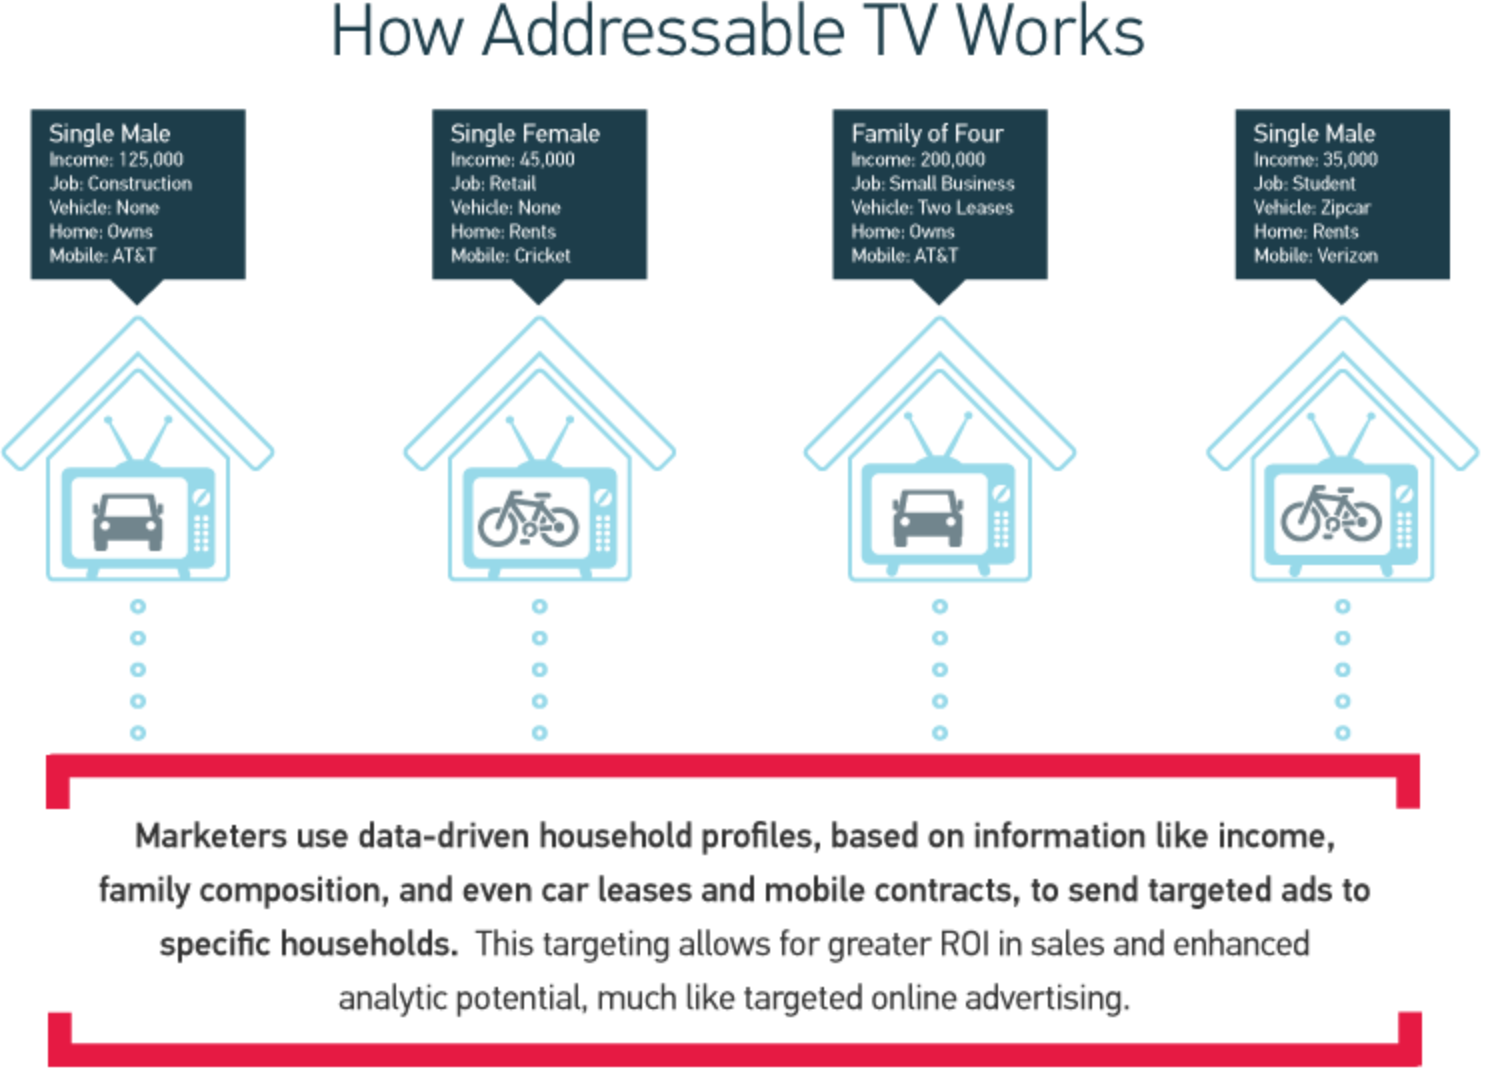 how addressable television works